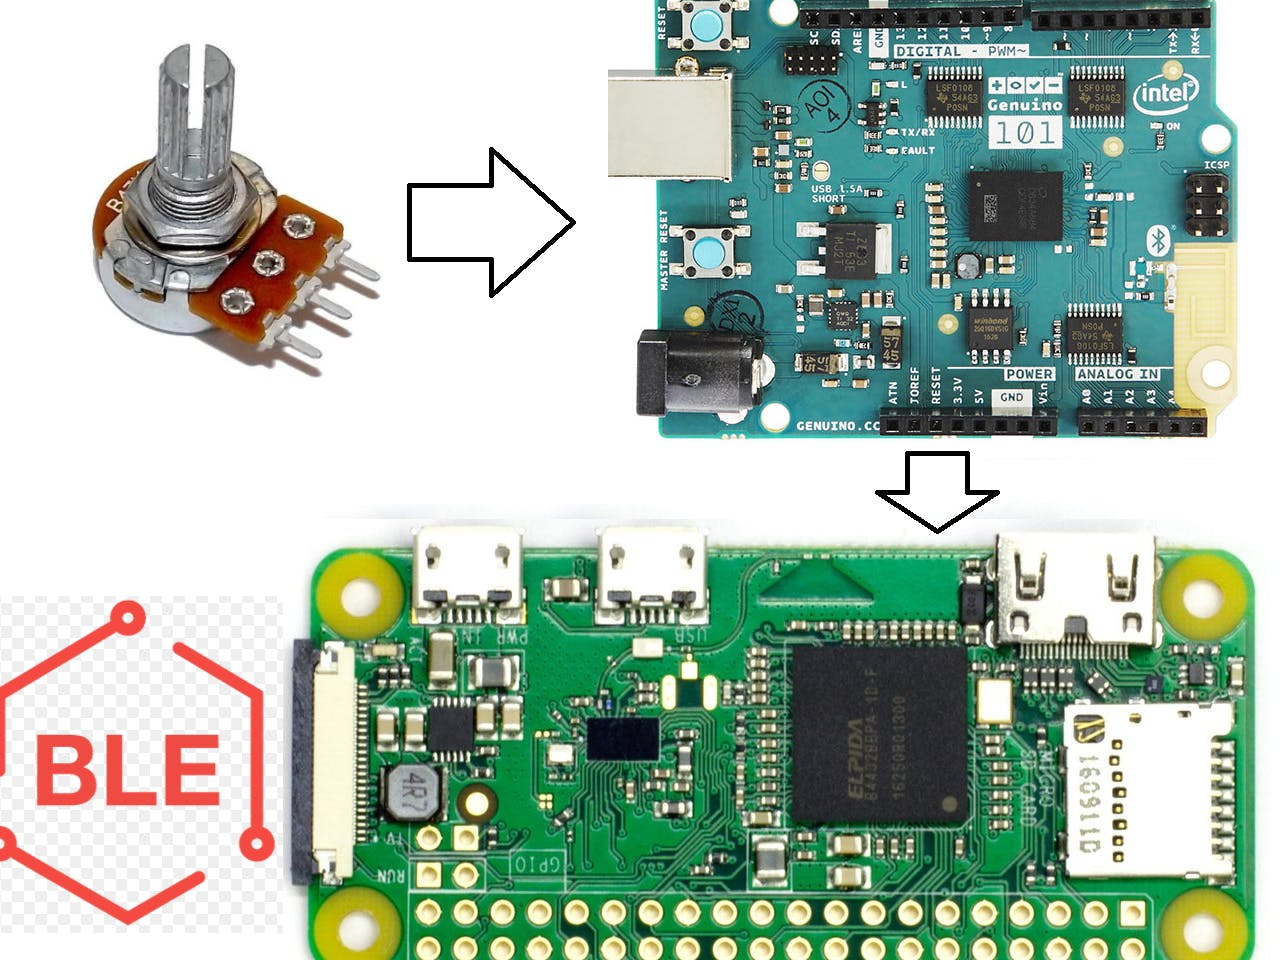 Arduino 101 Connects with Raspberry Pi Zero W